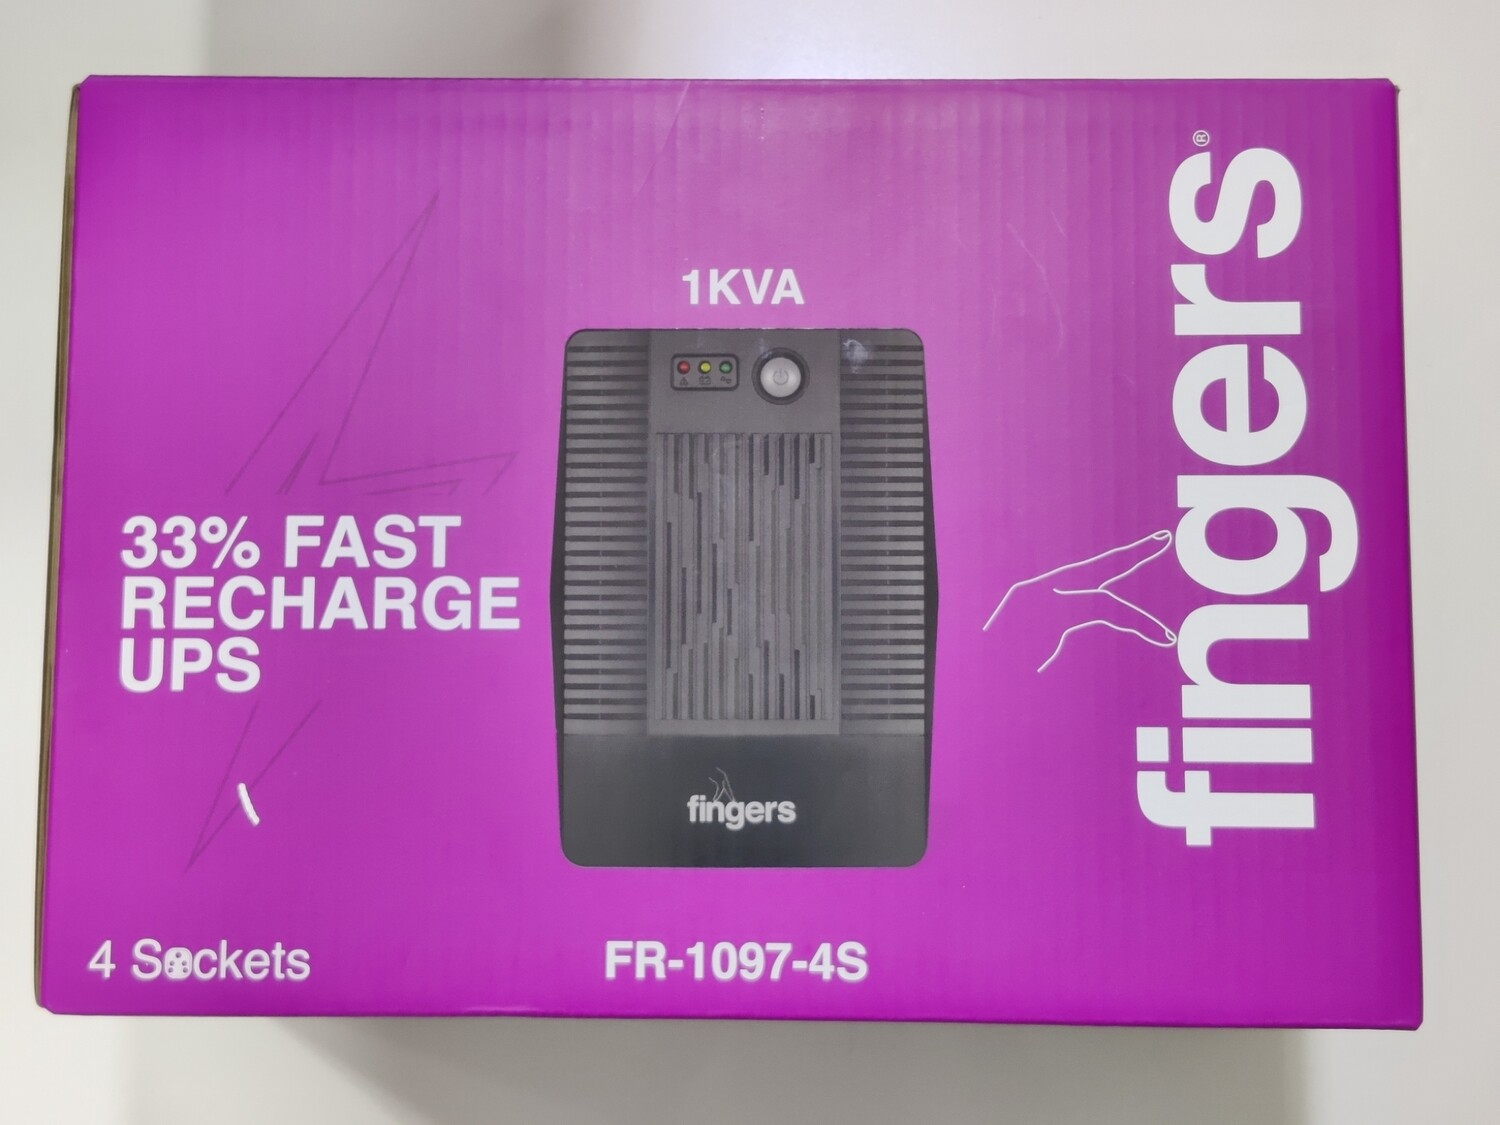 Fingers 1KVA Fast-Recharge Computer UPS, FR-1097-4S